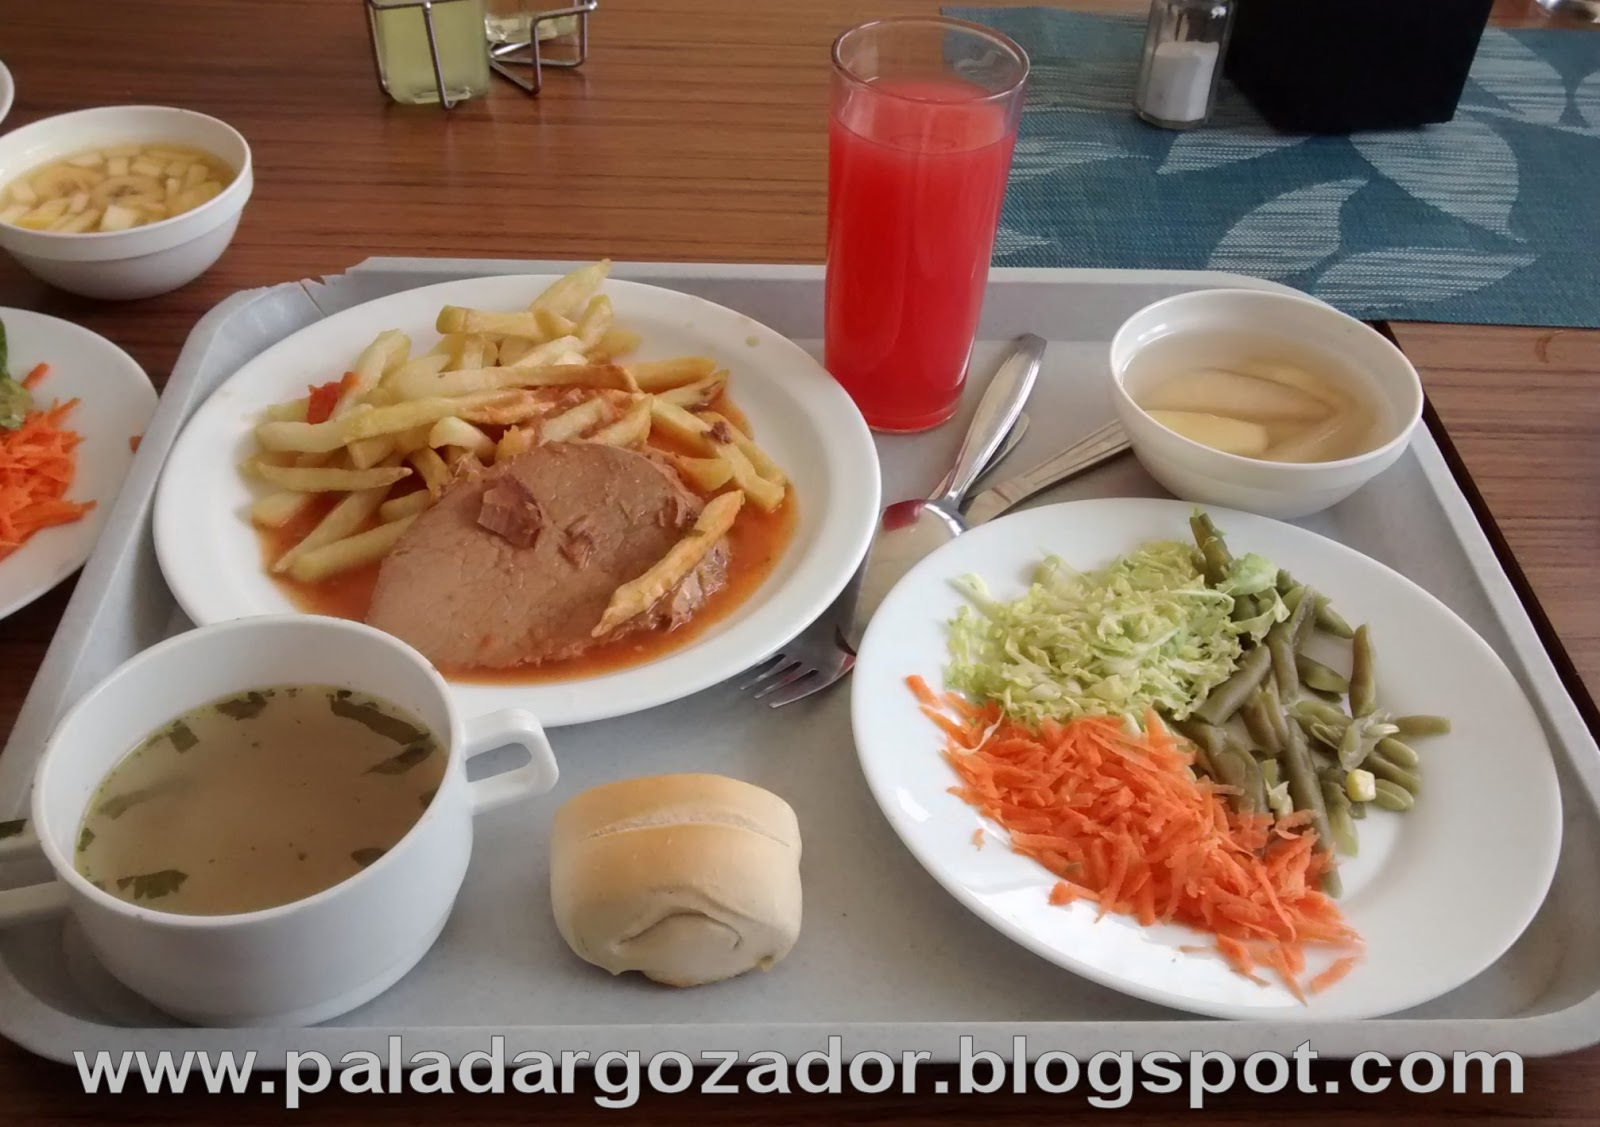 Paladar gozador chile julio 2015 for Ideas de almuerzos caseros